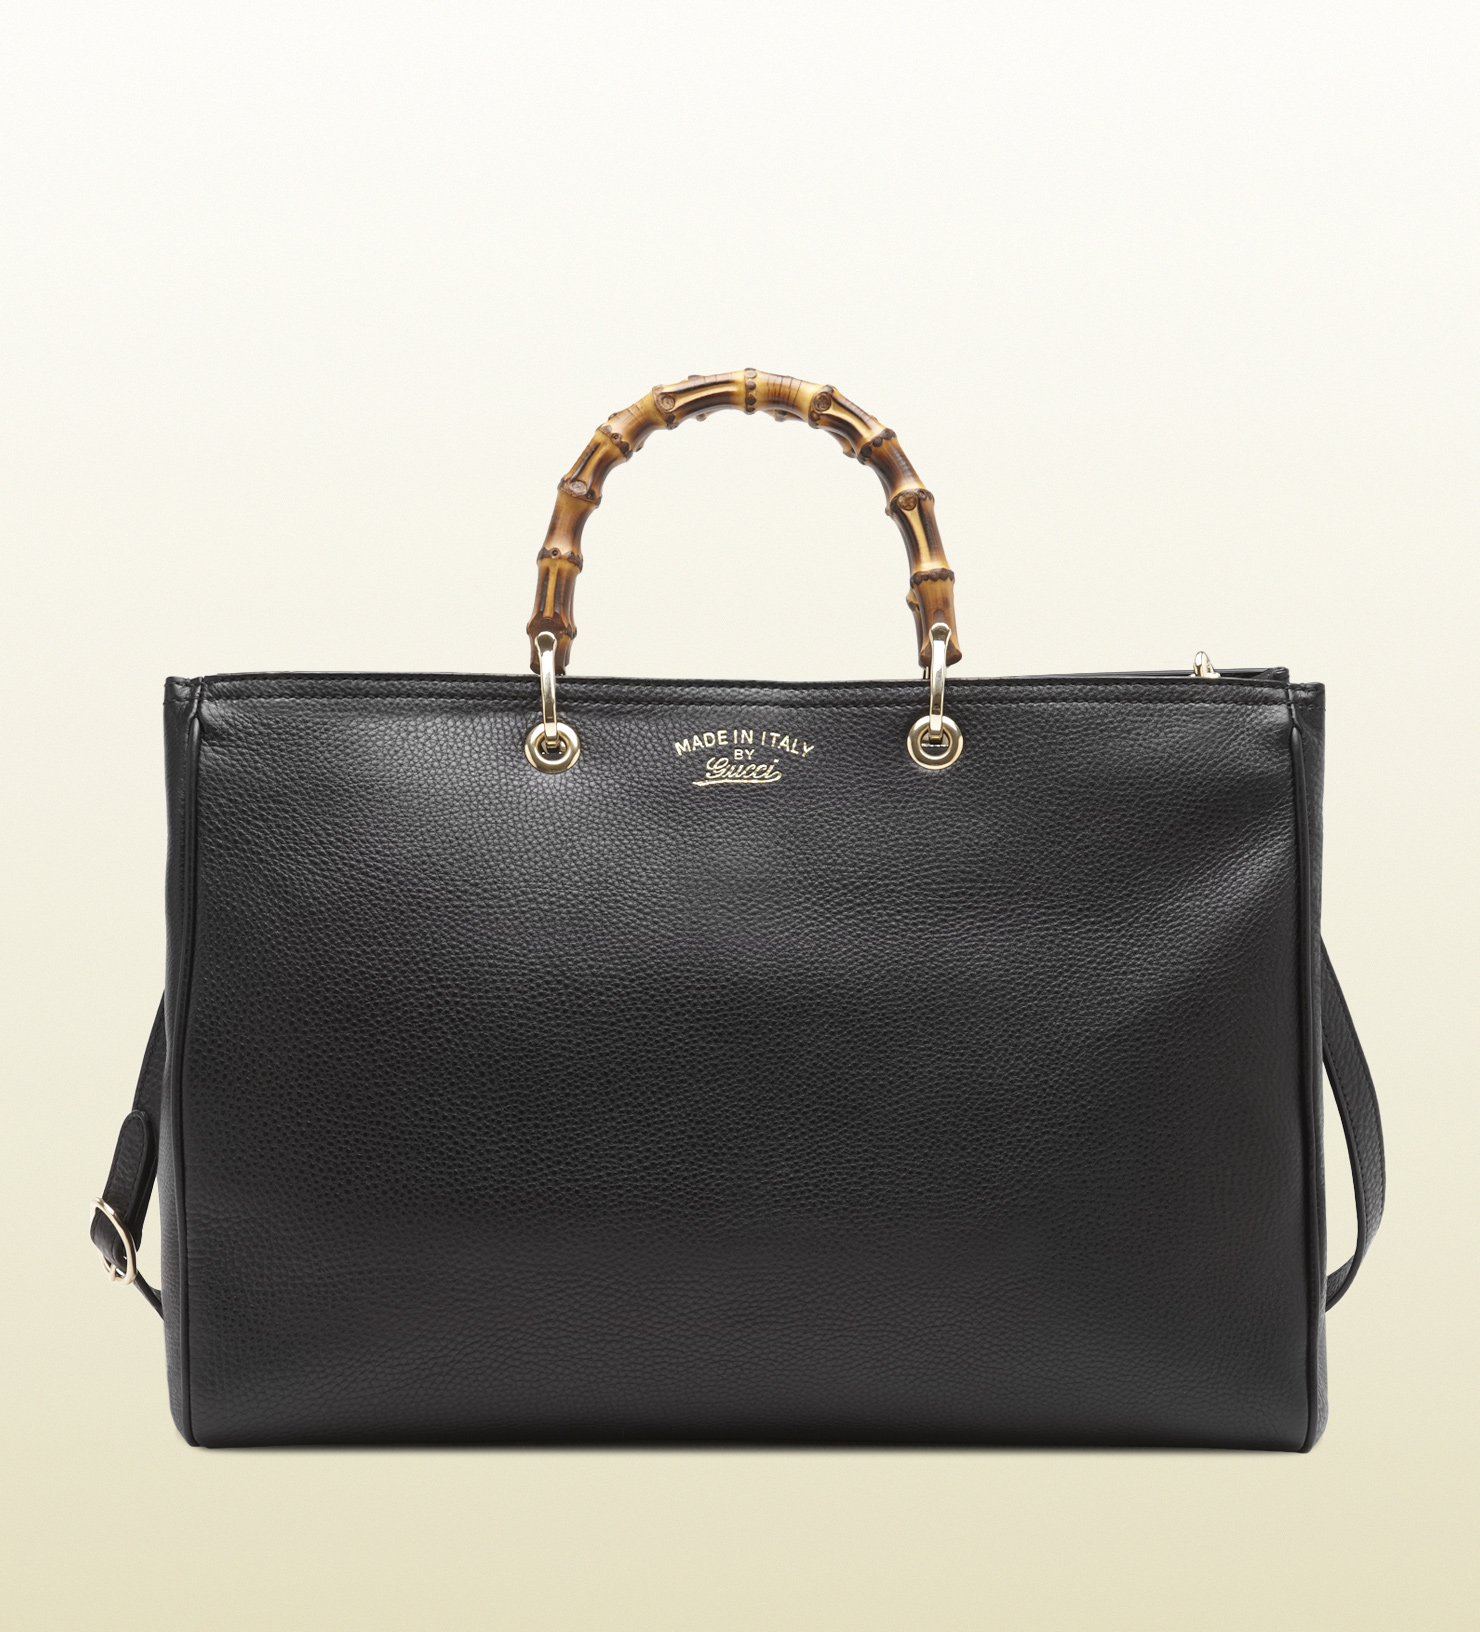 gucci bamboo leather tote in black bamboo lyst. Black Bedroom Furniture Sets. Home Design Ideas